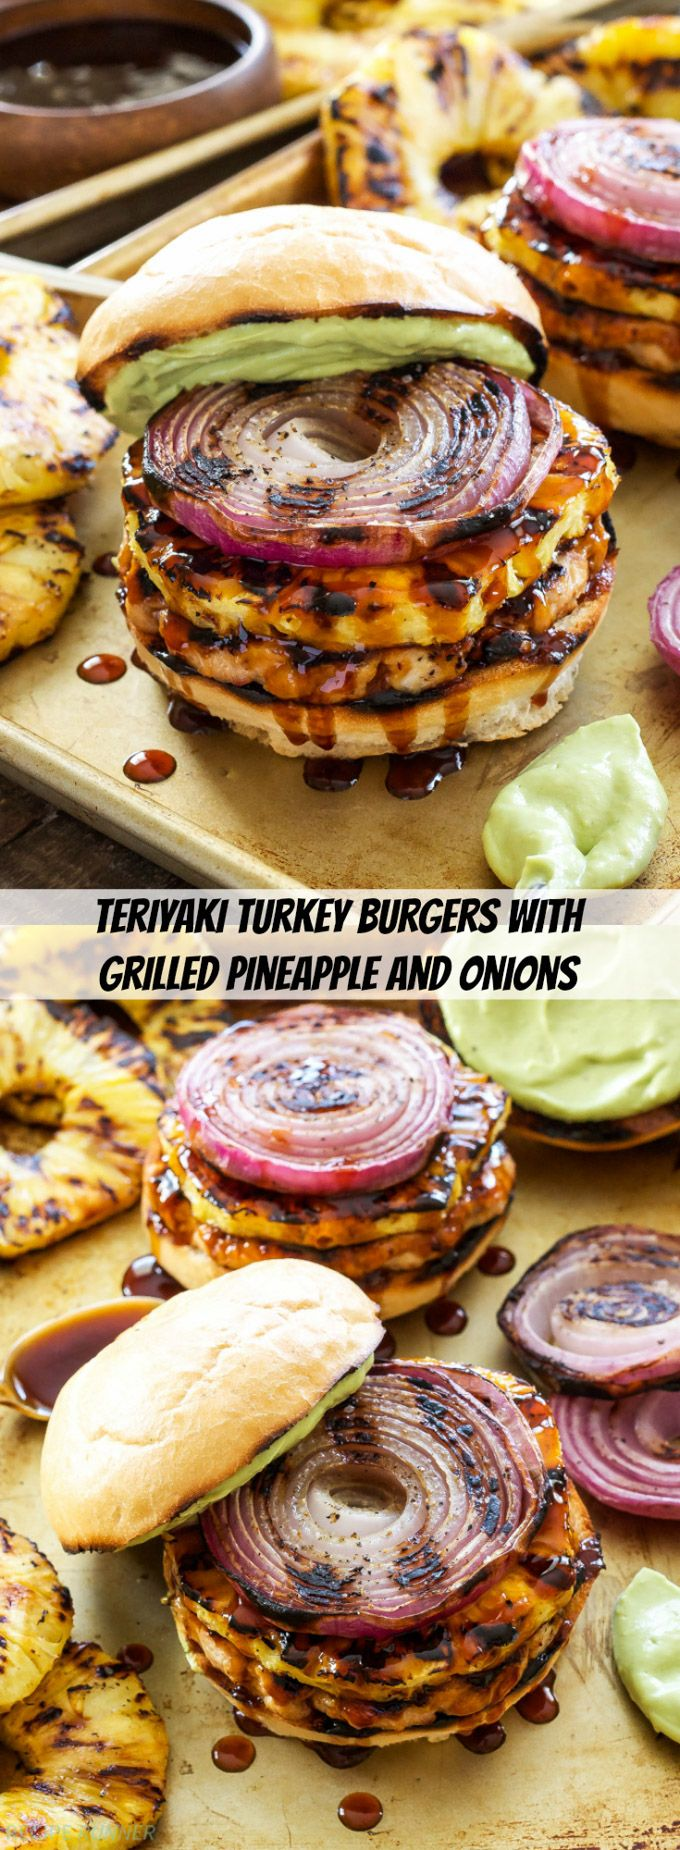 Teriyaki Turkey Burgers with Grilled Pineapple and Onions | Fire up the grill…